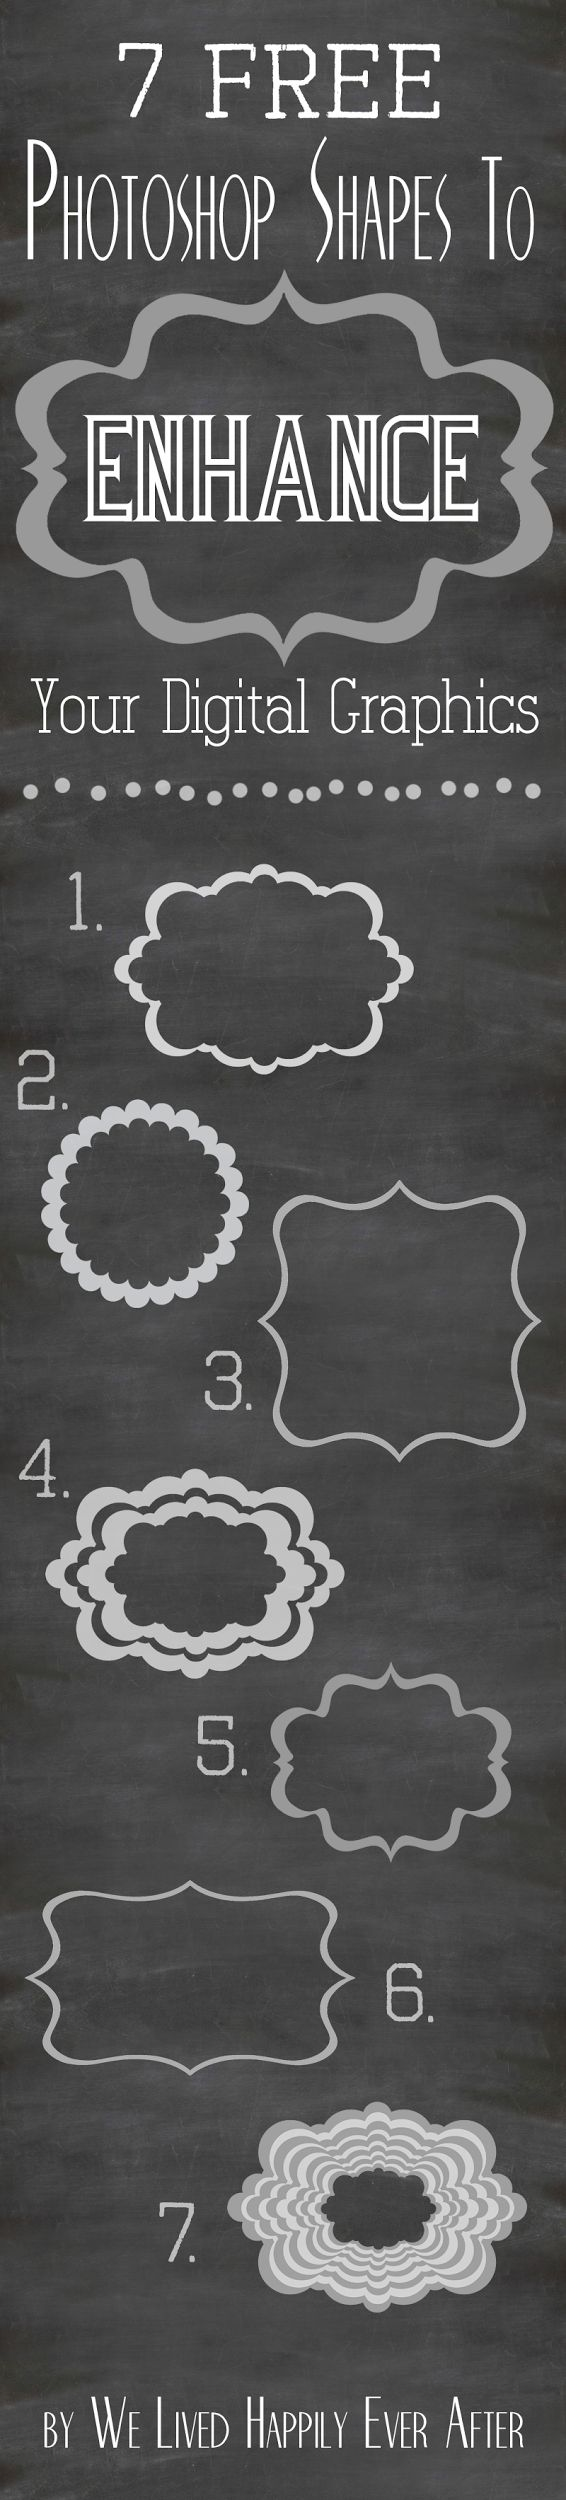 7 Free Photoshop Shapes to Enhance your Digital Graphics (and how to use them)